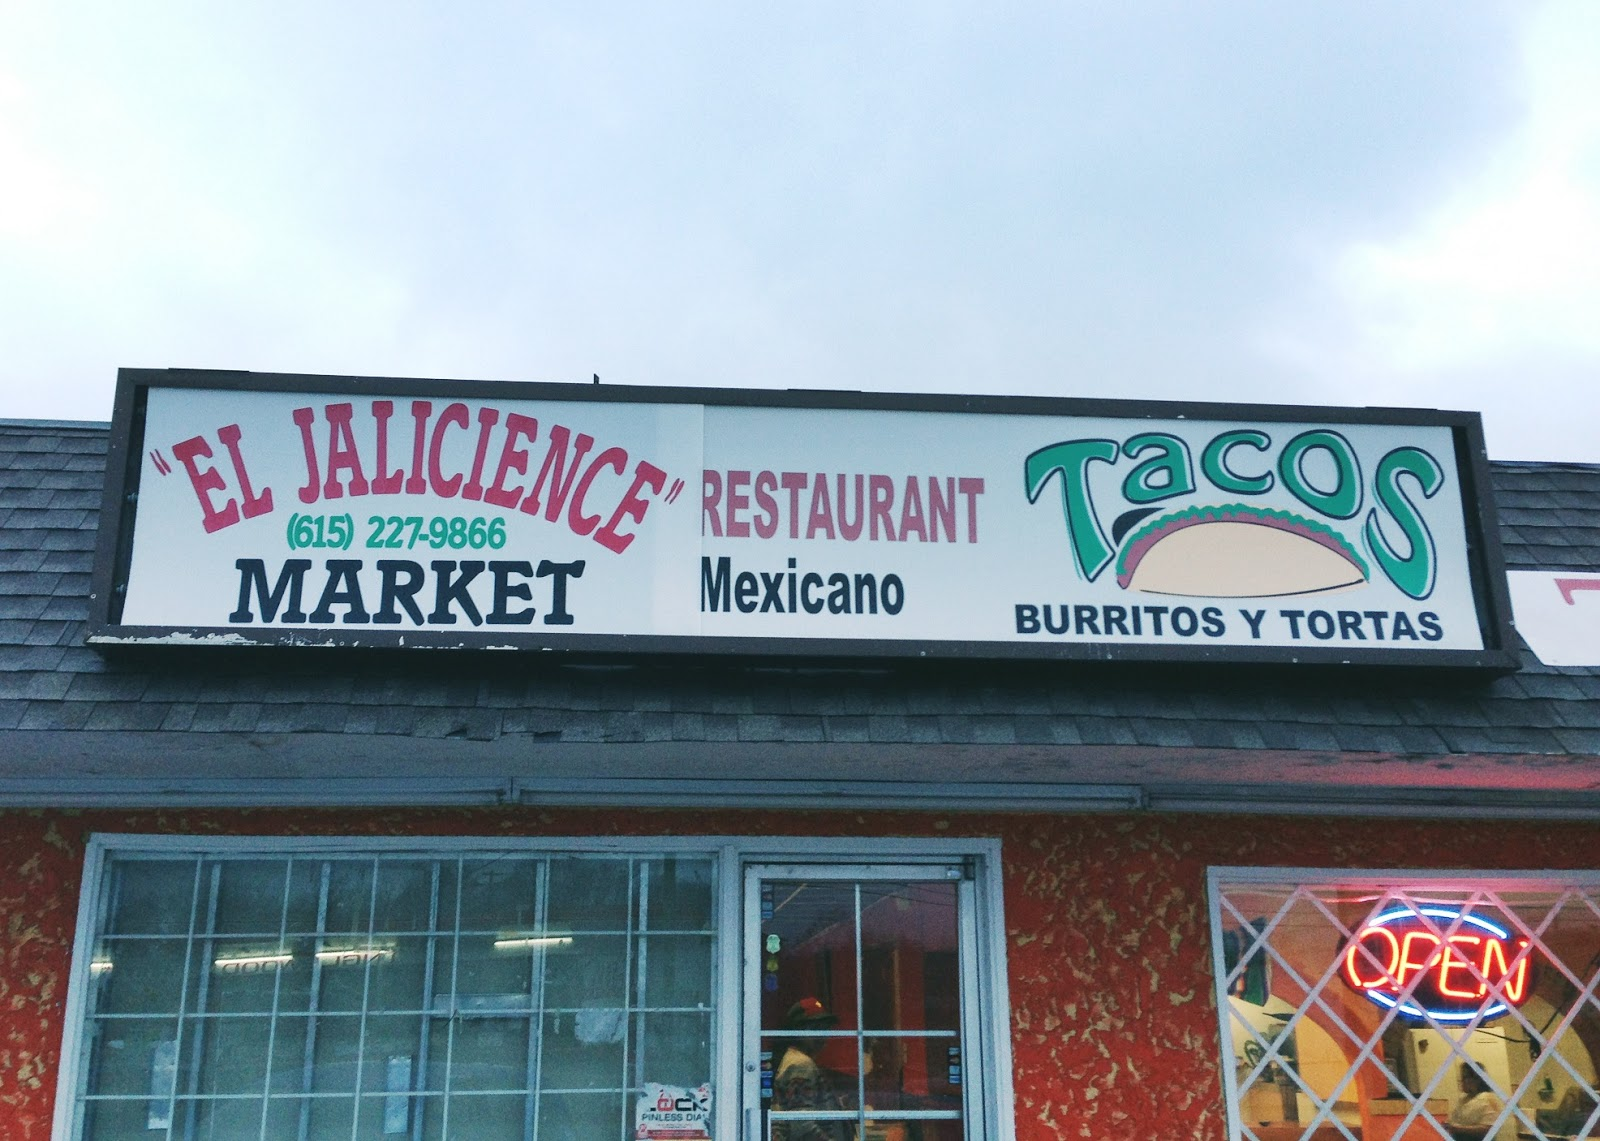 El Jaicience Mexican restaurant in Nashville Tennessee